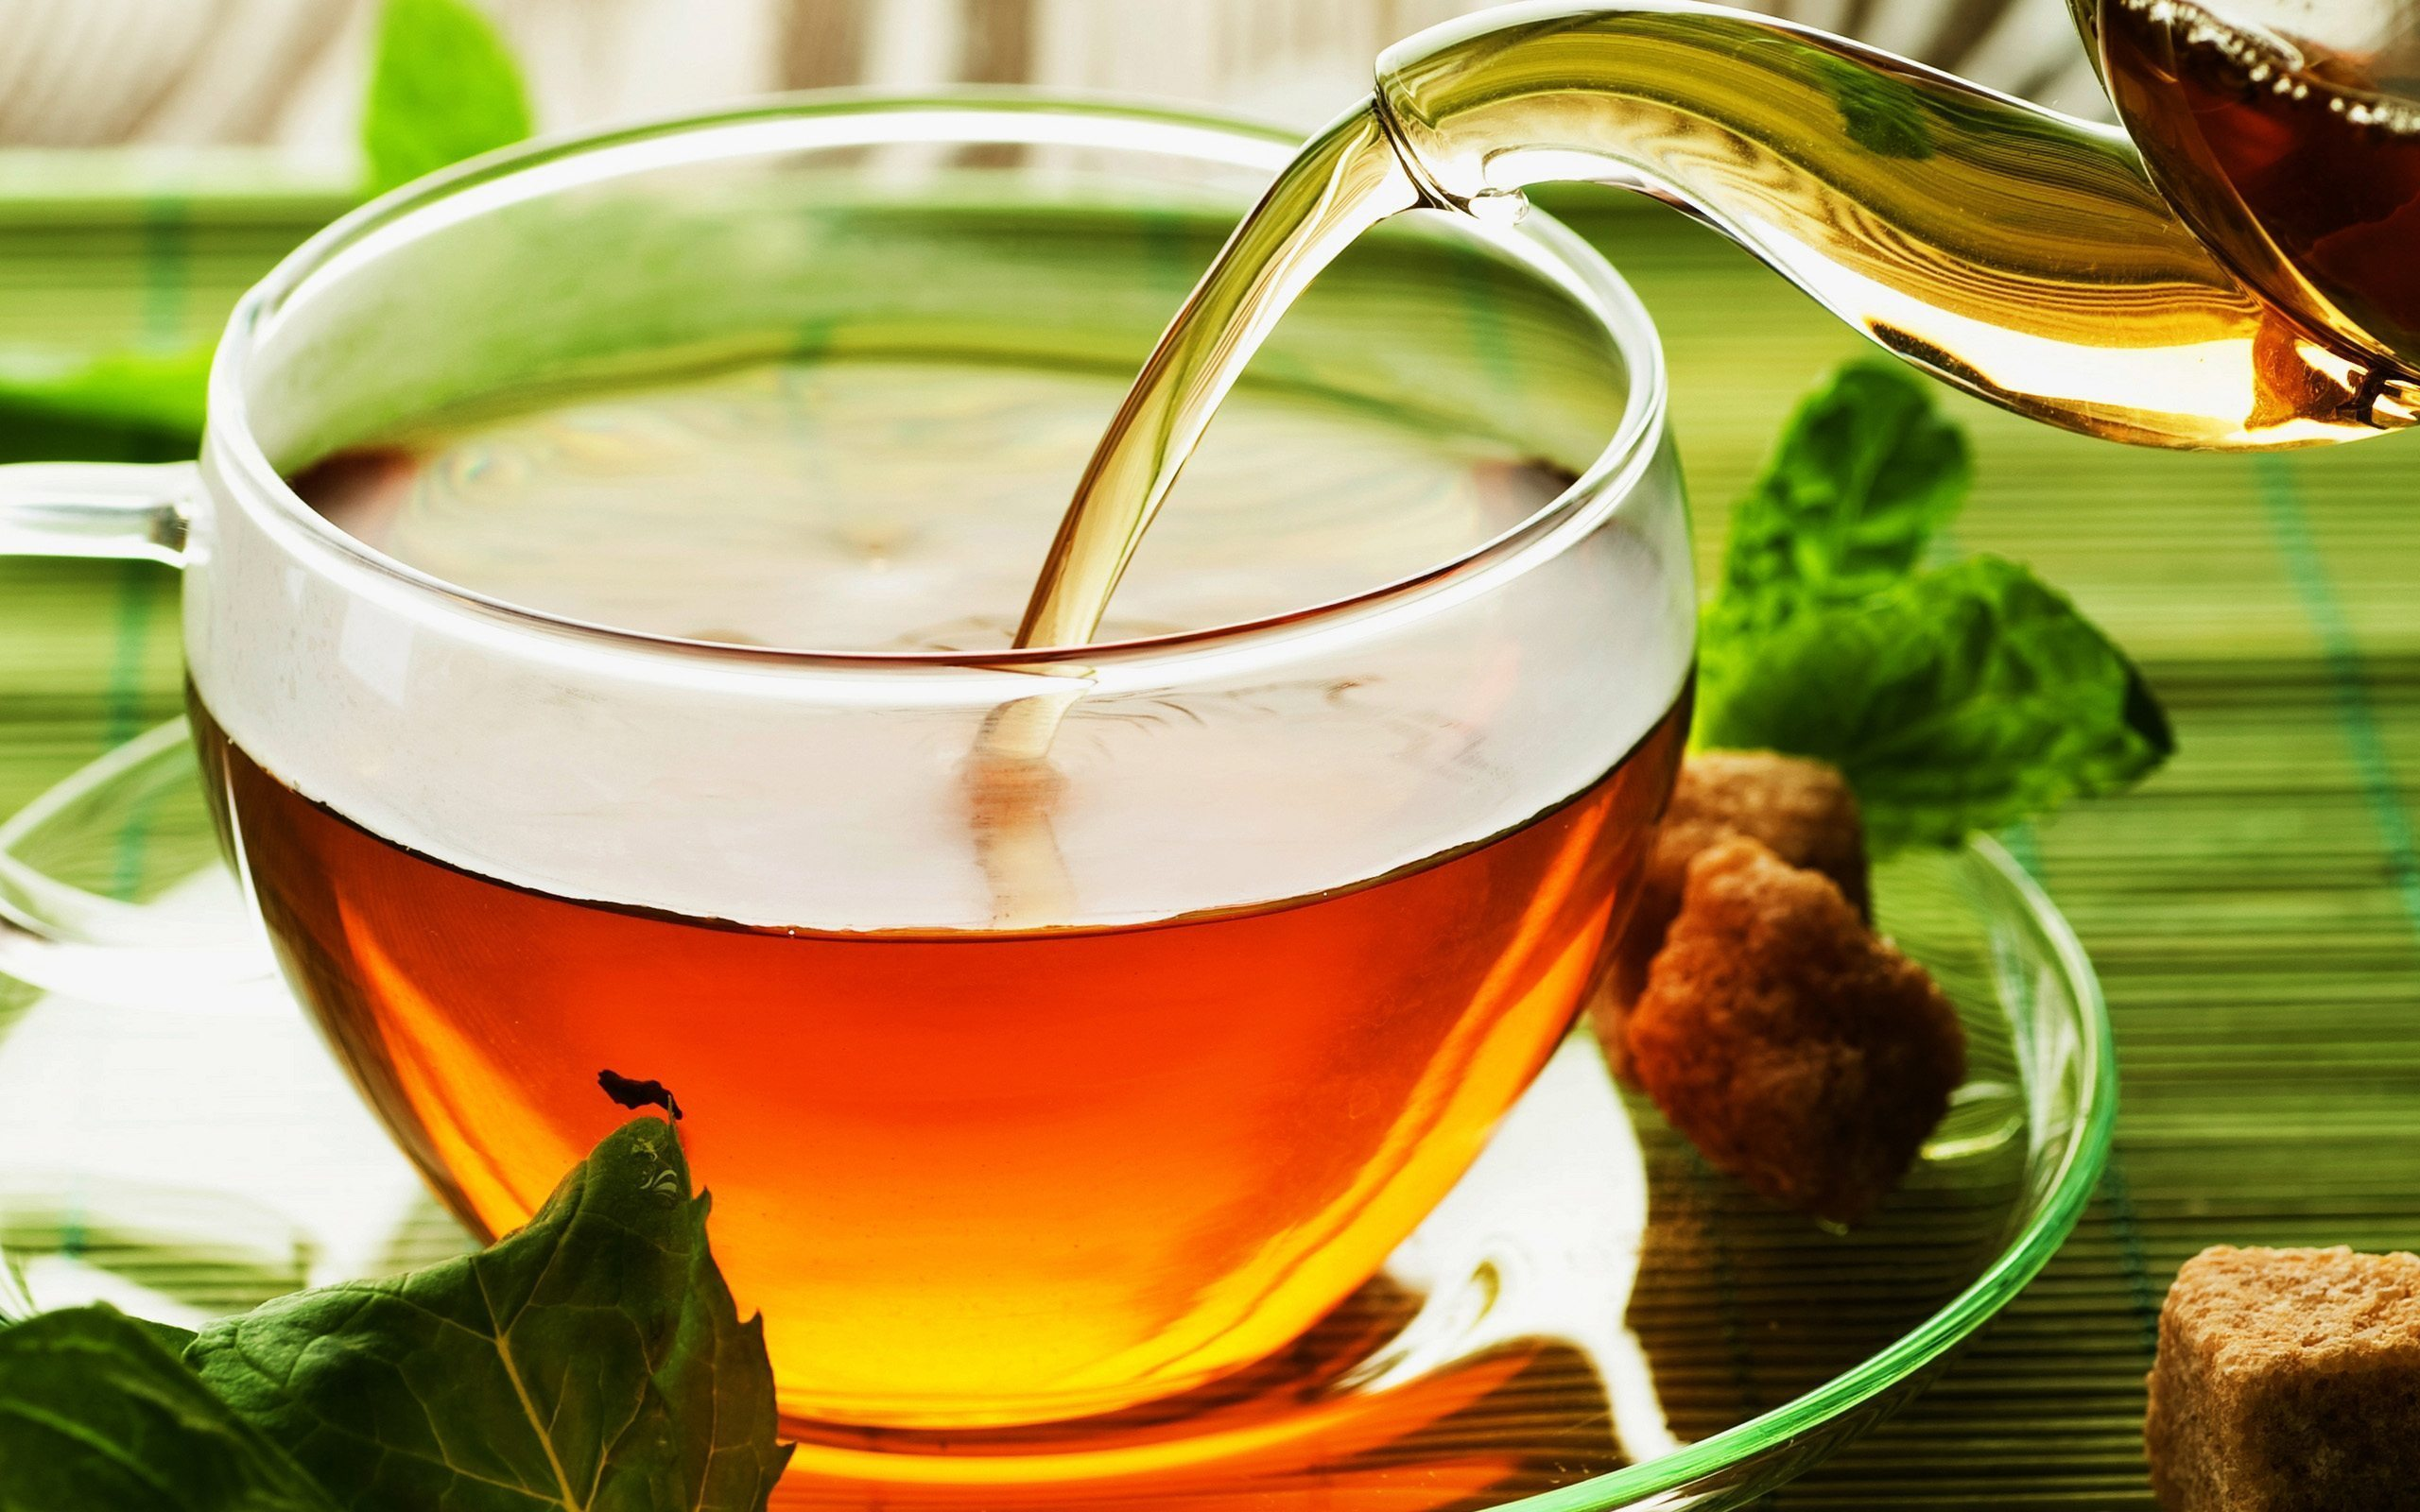 Every type of tea has health benefits. Here's what you need to know